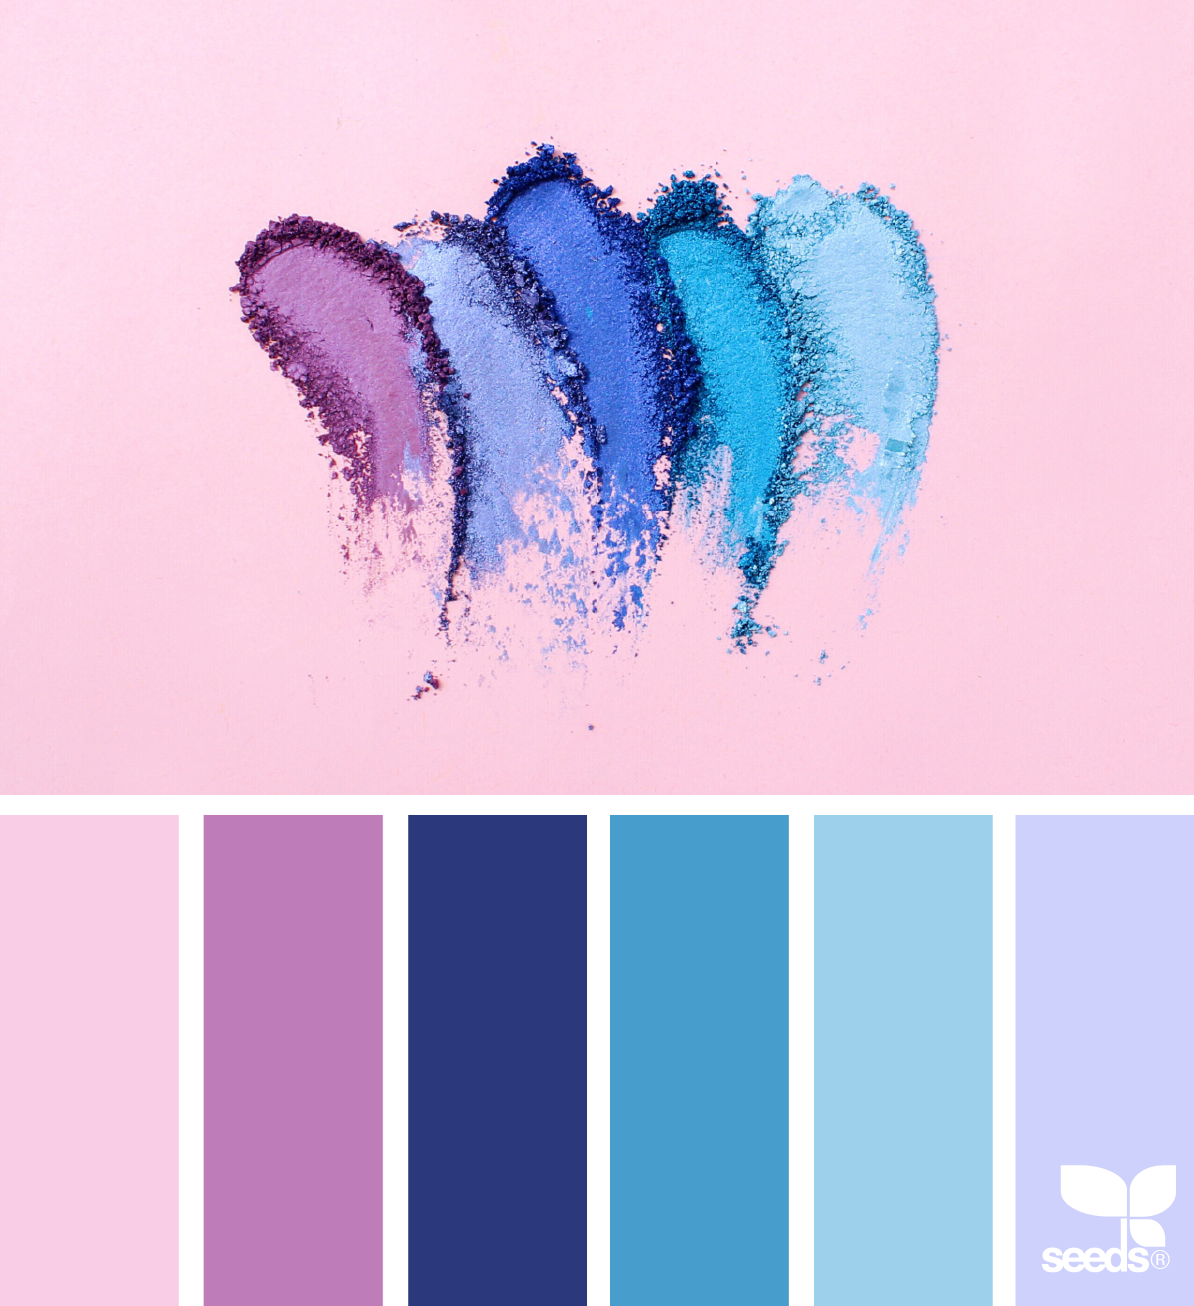 Color Create in 2018 | Color Palettes | Pinterest | Seeds, Collage ...